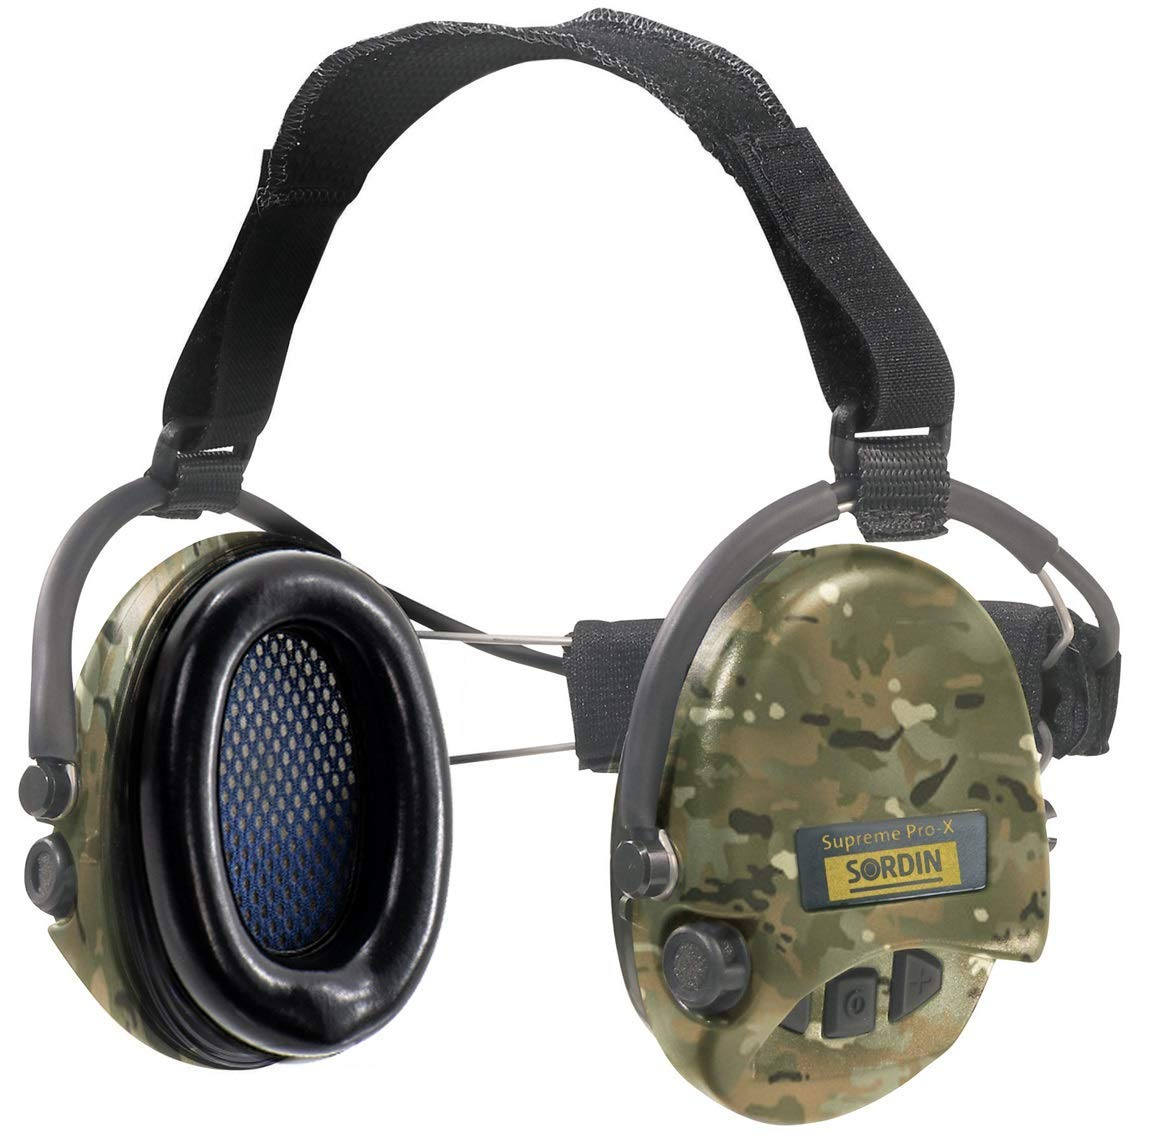 Sordin Supreme PRO X - Active Hearing Protection with Neckband - Perfect for Helmets - Safety Earmuffs with Camo Cups and Foam Seals